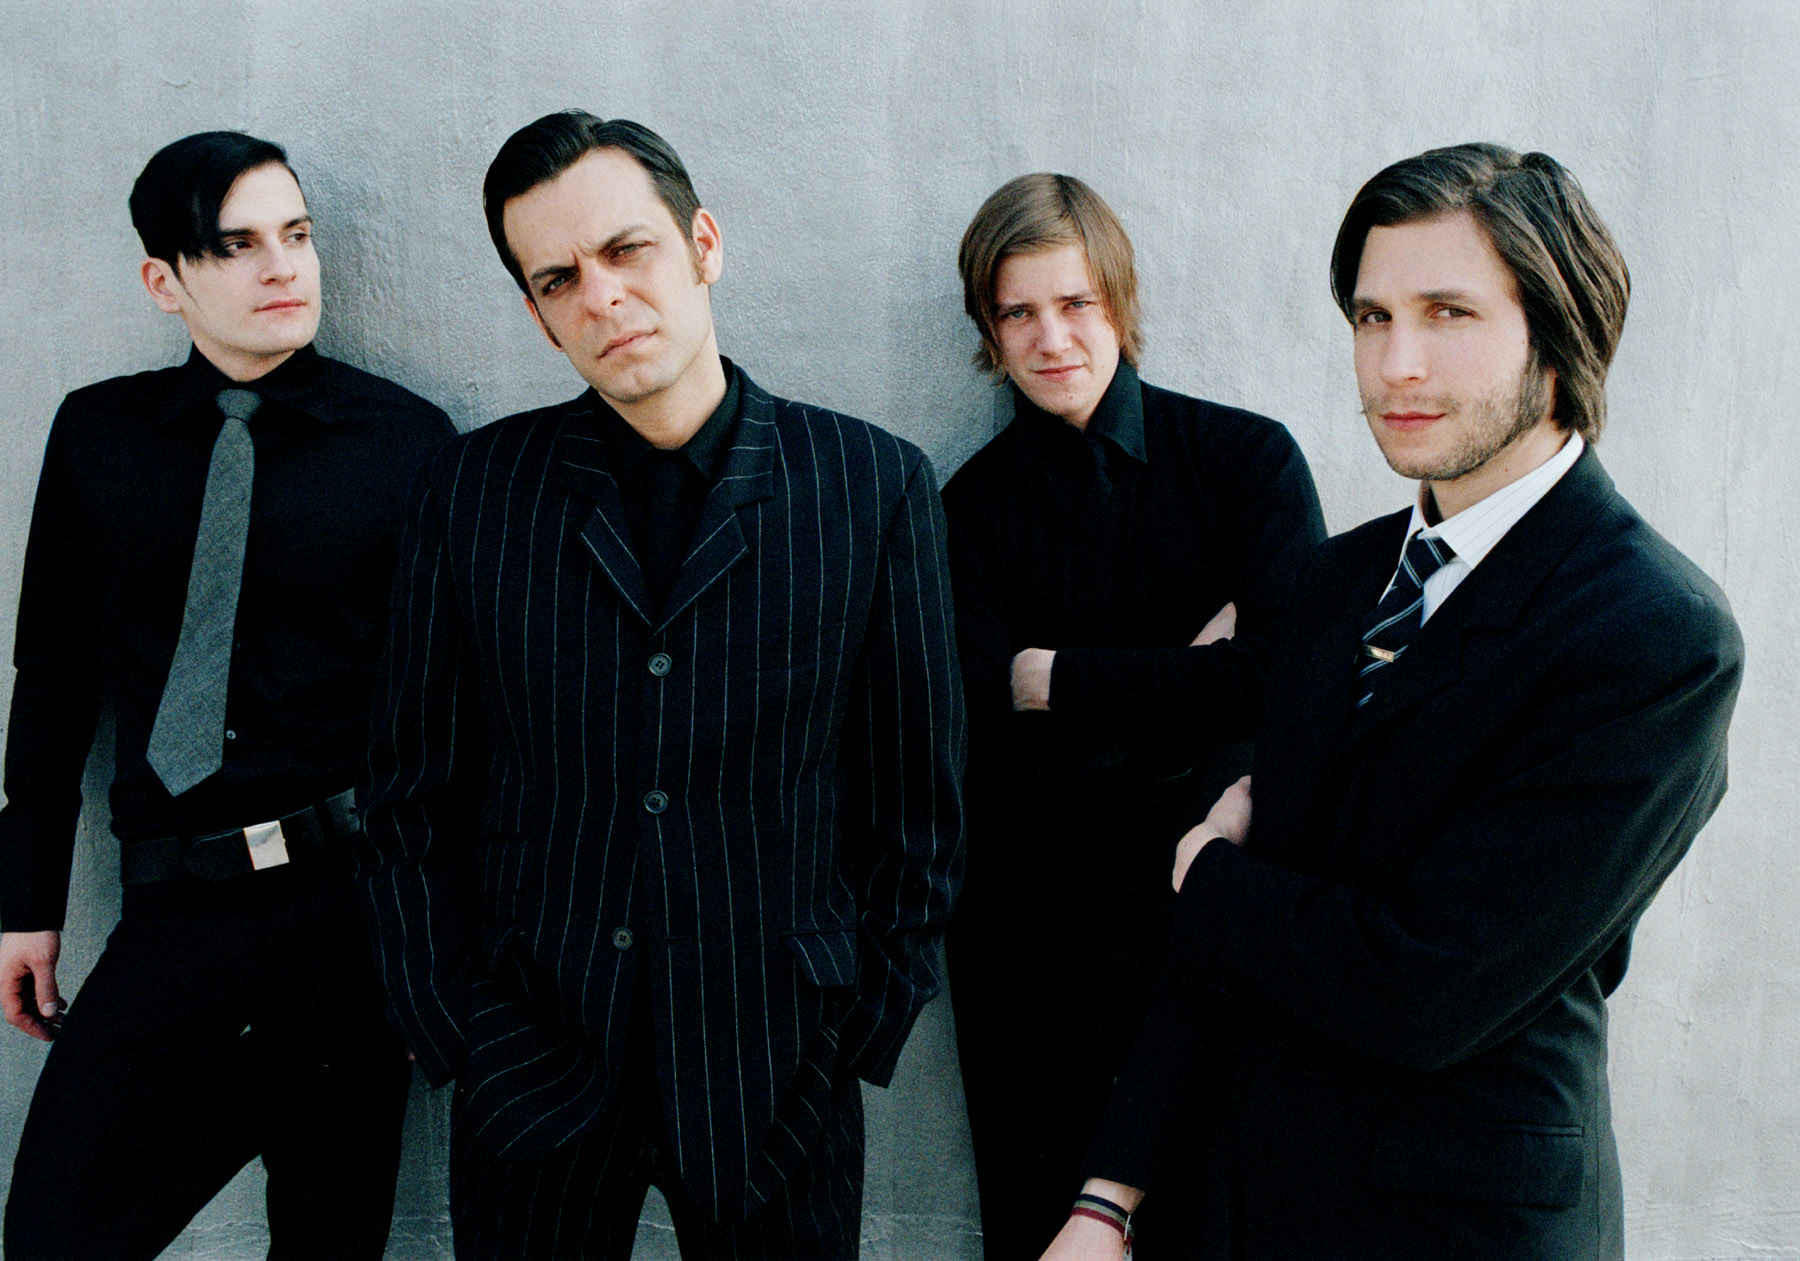 interpol - photo #22